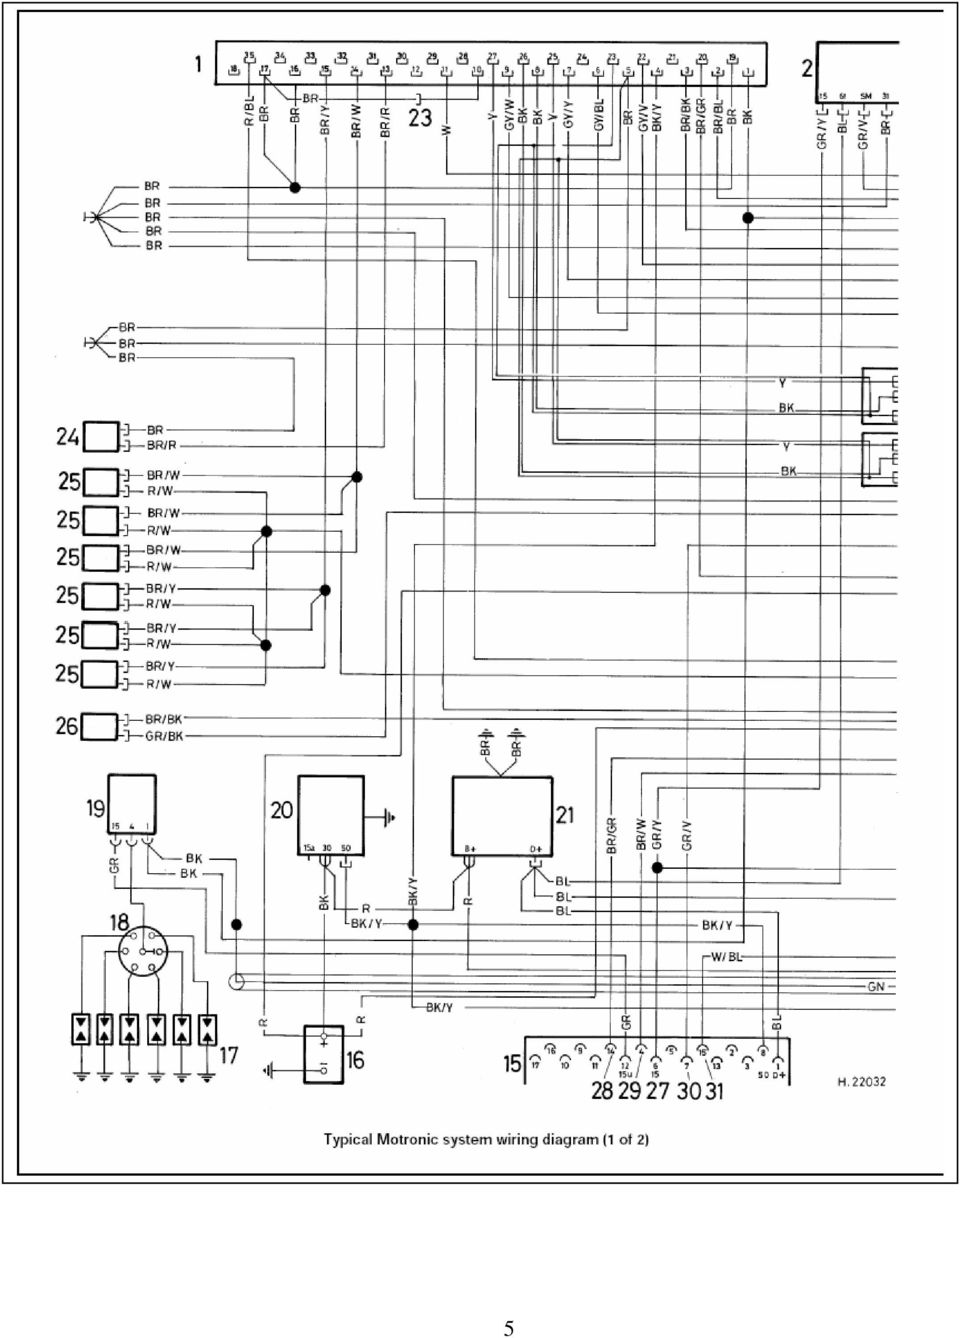 Colour Codes Diagrams Index Pdf 1997 Mazda 626 Cruise Control System Electrical Schematic 6 7 Key To Motronic Engine Wiring